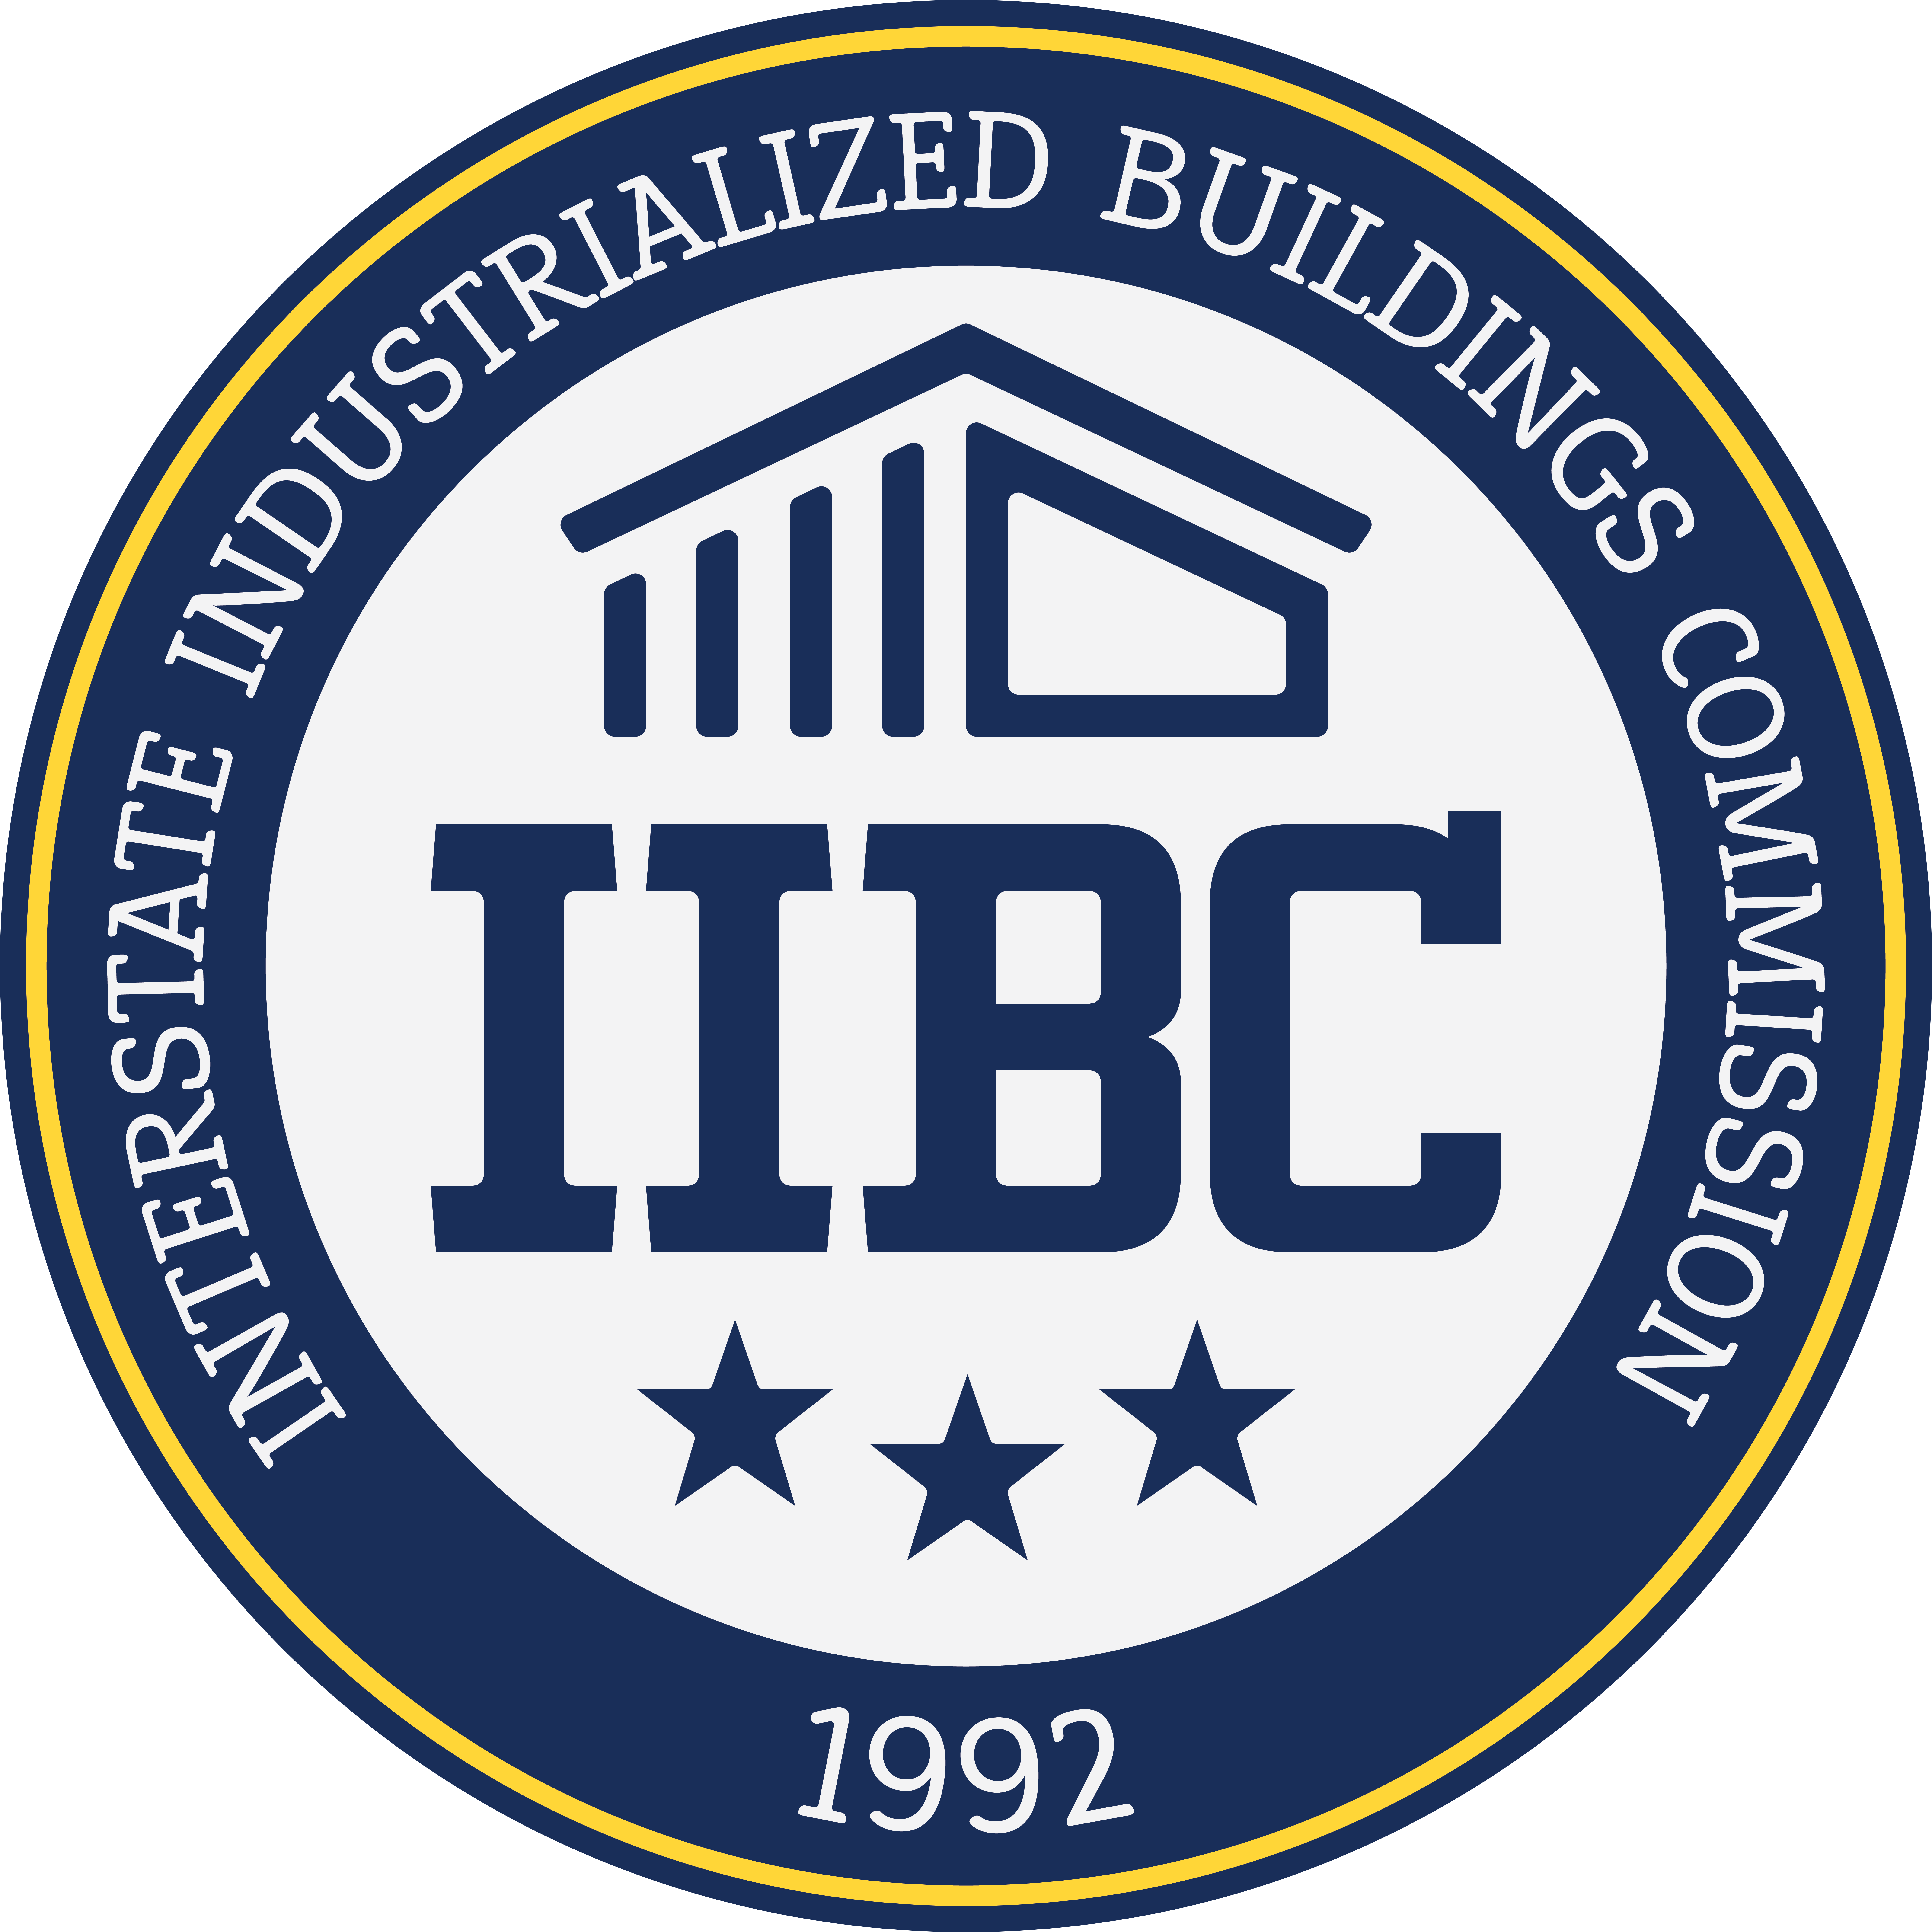 Interstate Industrialized Buildings Commission